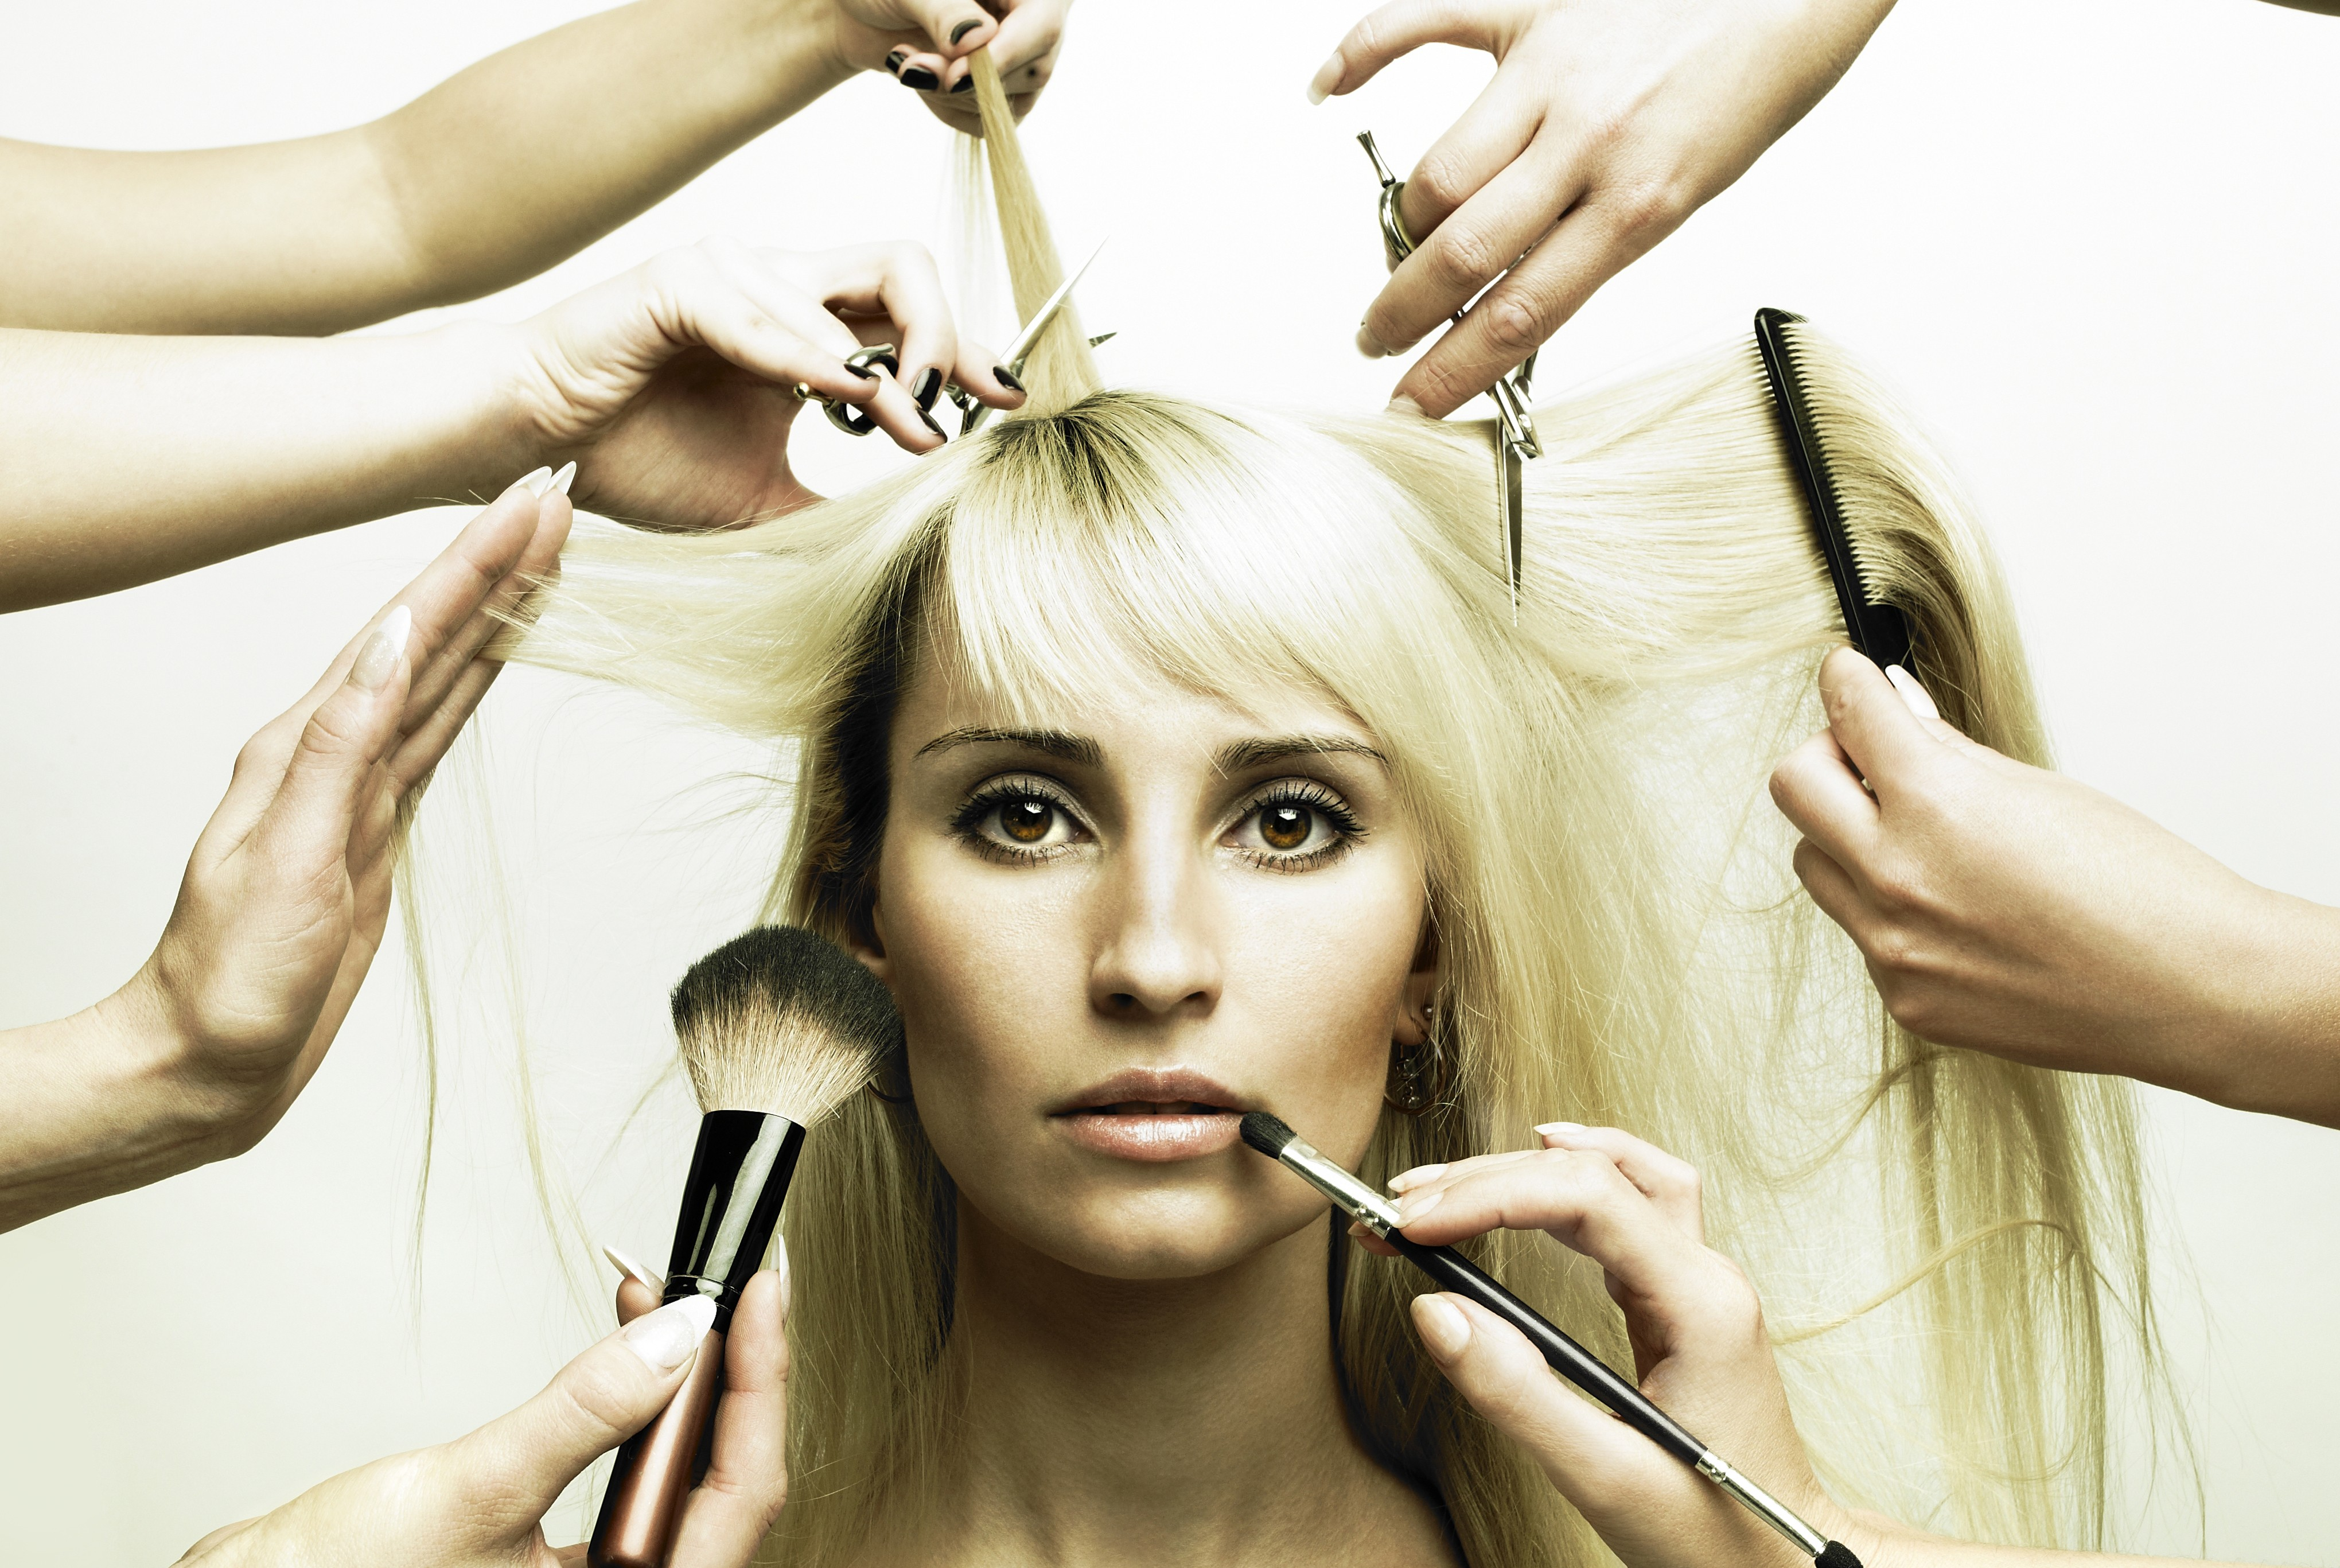 blond - hair and makeup